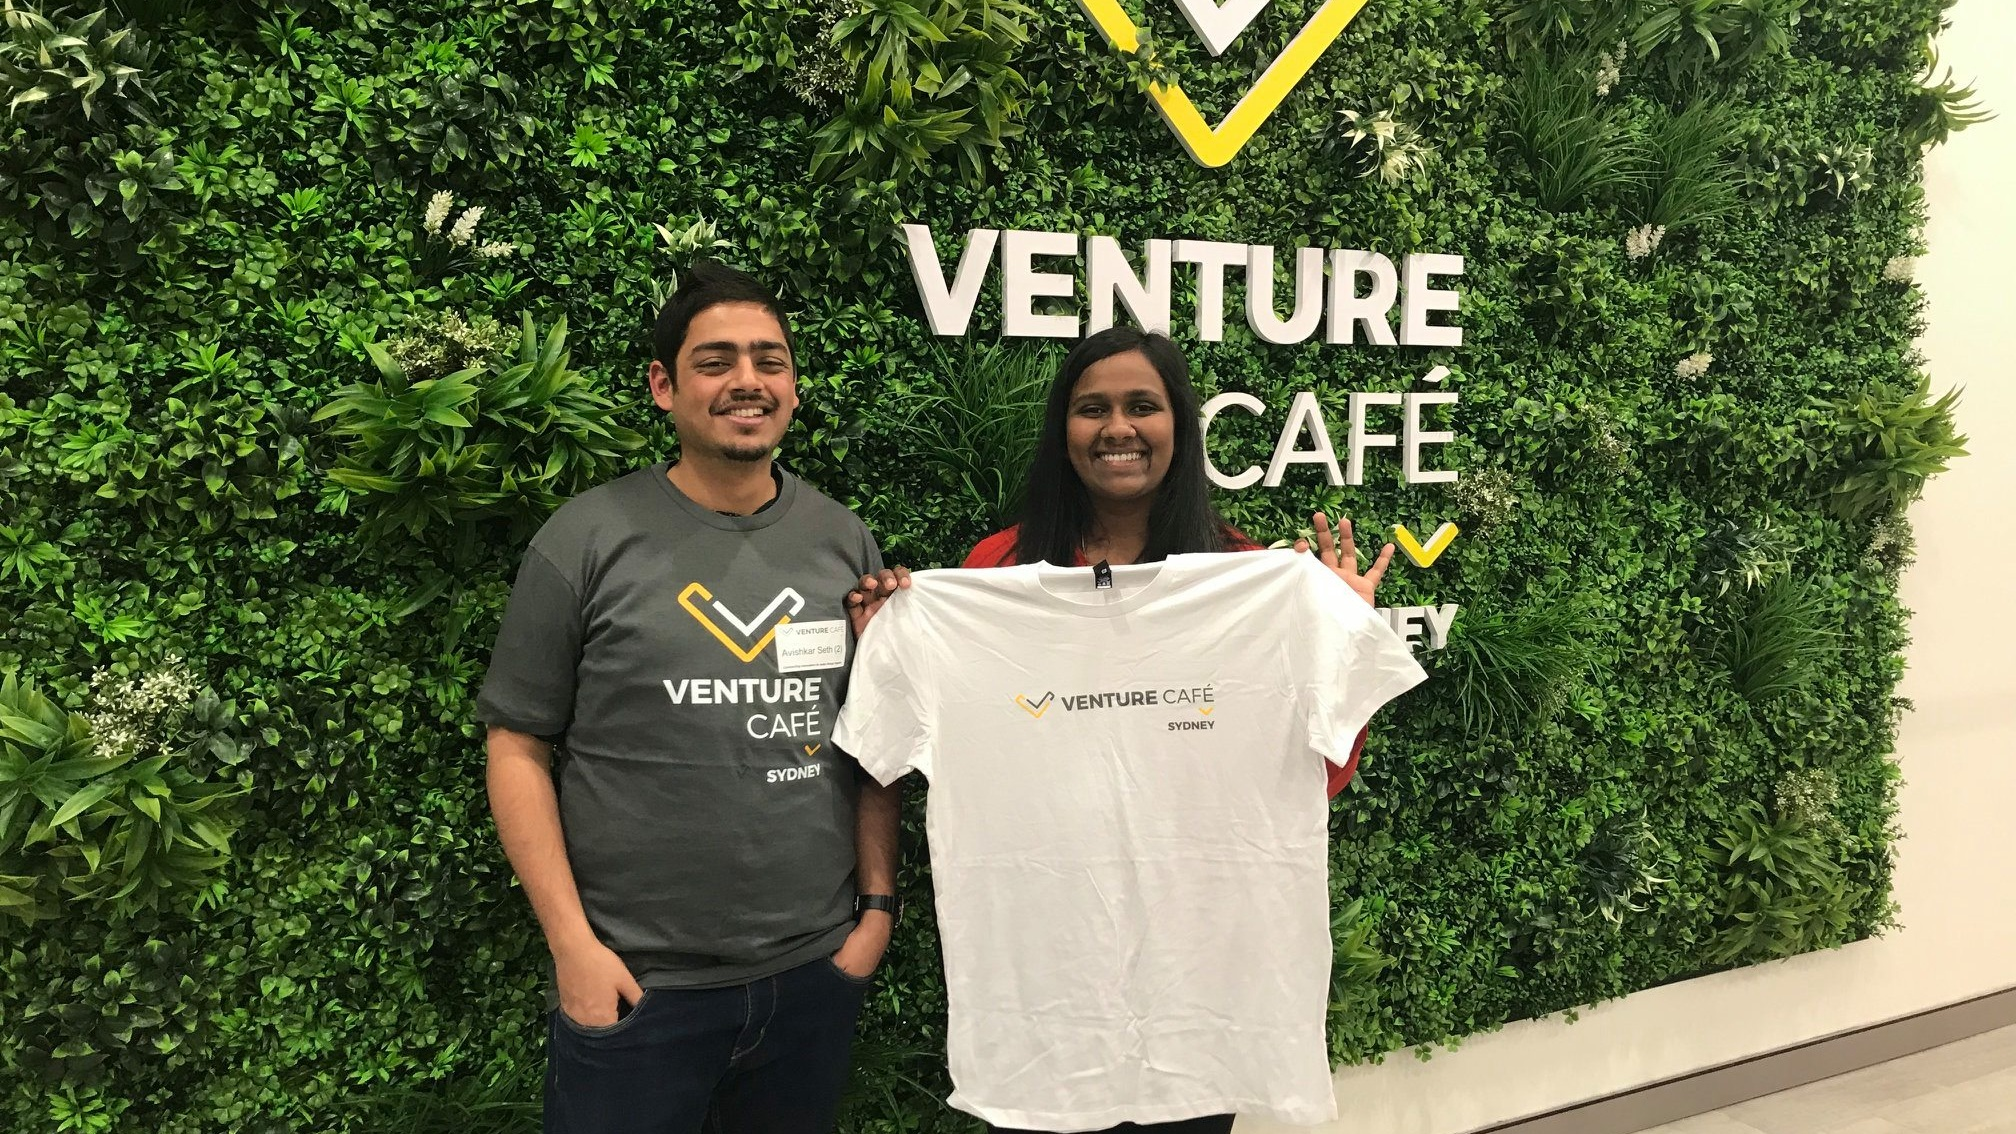 FREQUENTLY ASKED QUESTIONS - These are our awesome Ambassadors Avishkar and Alice with their new Venture Cafe swag!Ambassador attendance is on a 'when you can' basis. Just remember, you get out what you put in.